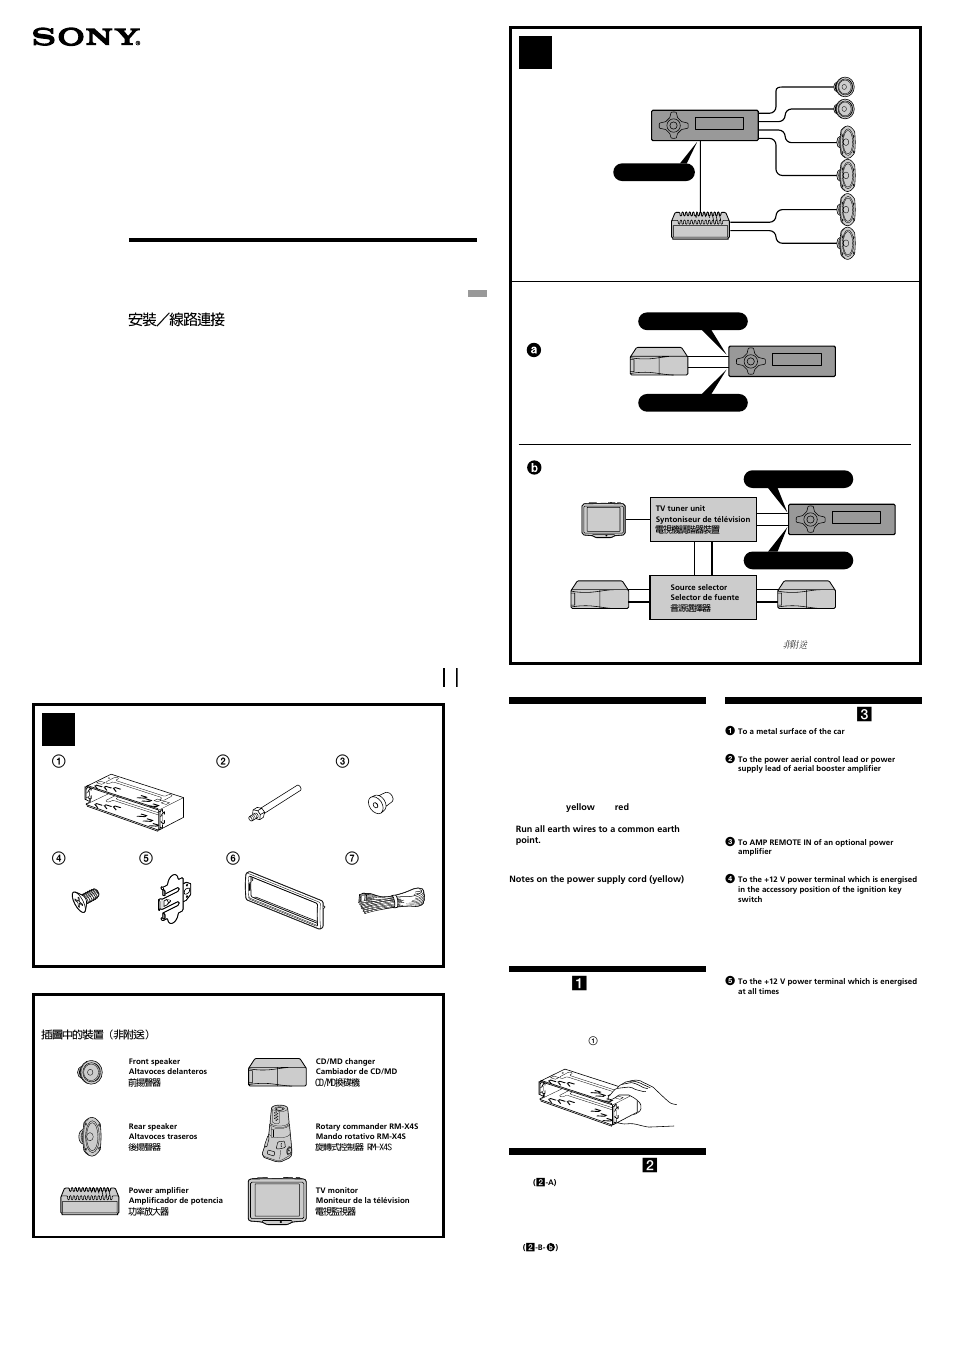 Sony Car Stereo Speaker Wiring Diagram : Sony xplod speaker wiring diagram images